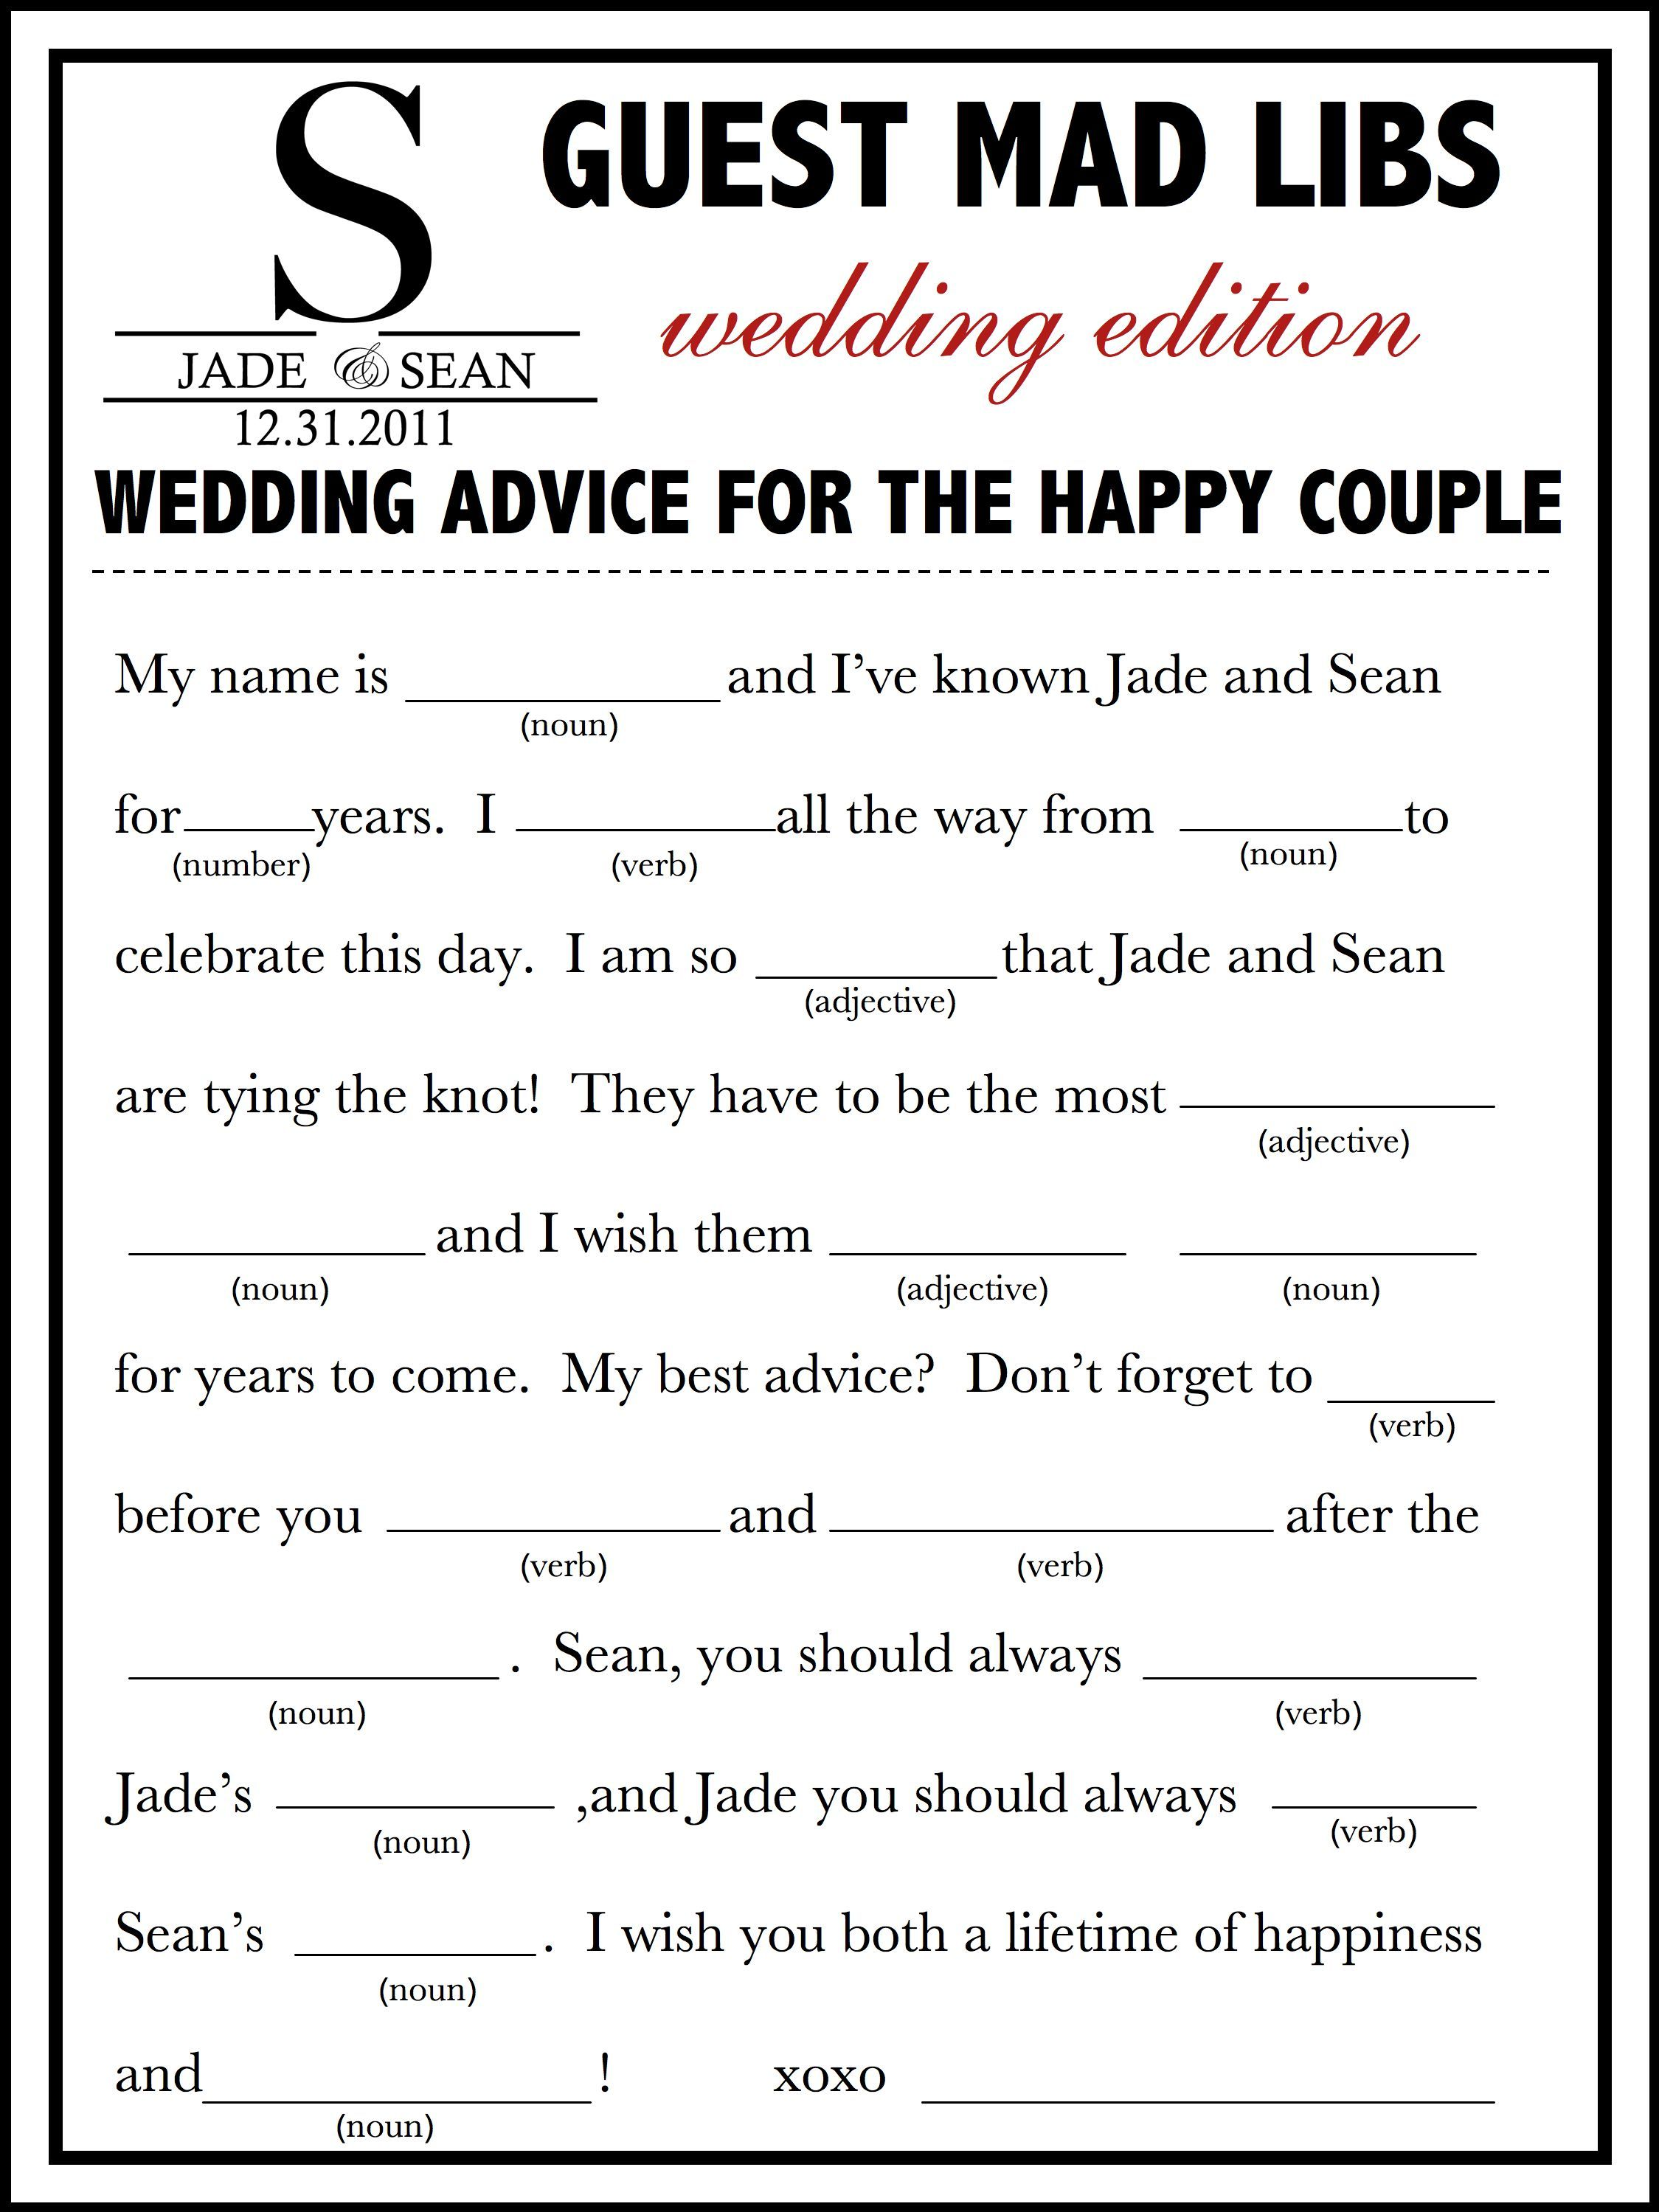 Wedding Mad Libs Template Free  Fun Unique Guest Book Alternative